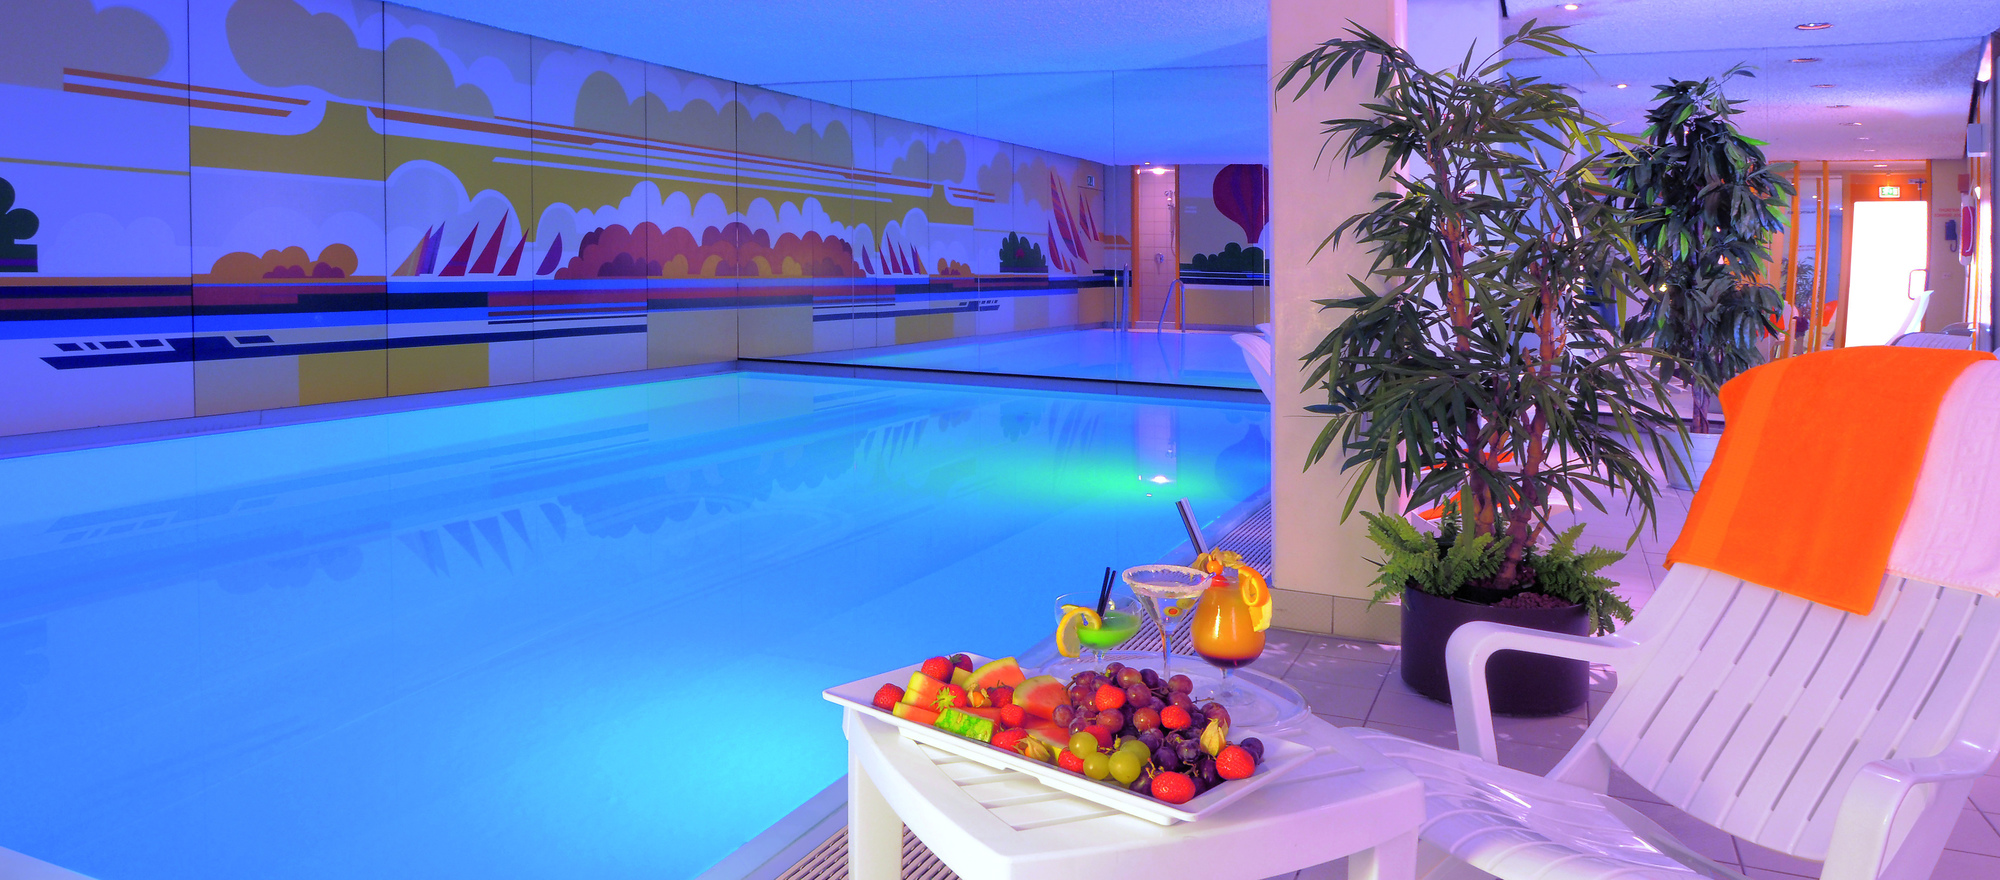 Relax in our small, yet exclusive pool area with Finnish sauna, infrared cabin and steam room shower at the 4-star hotel Ringhotel Loew´s Merkur in Nuremberg